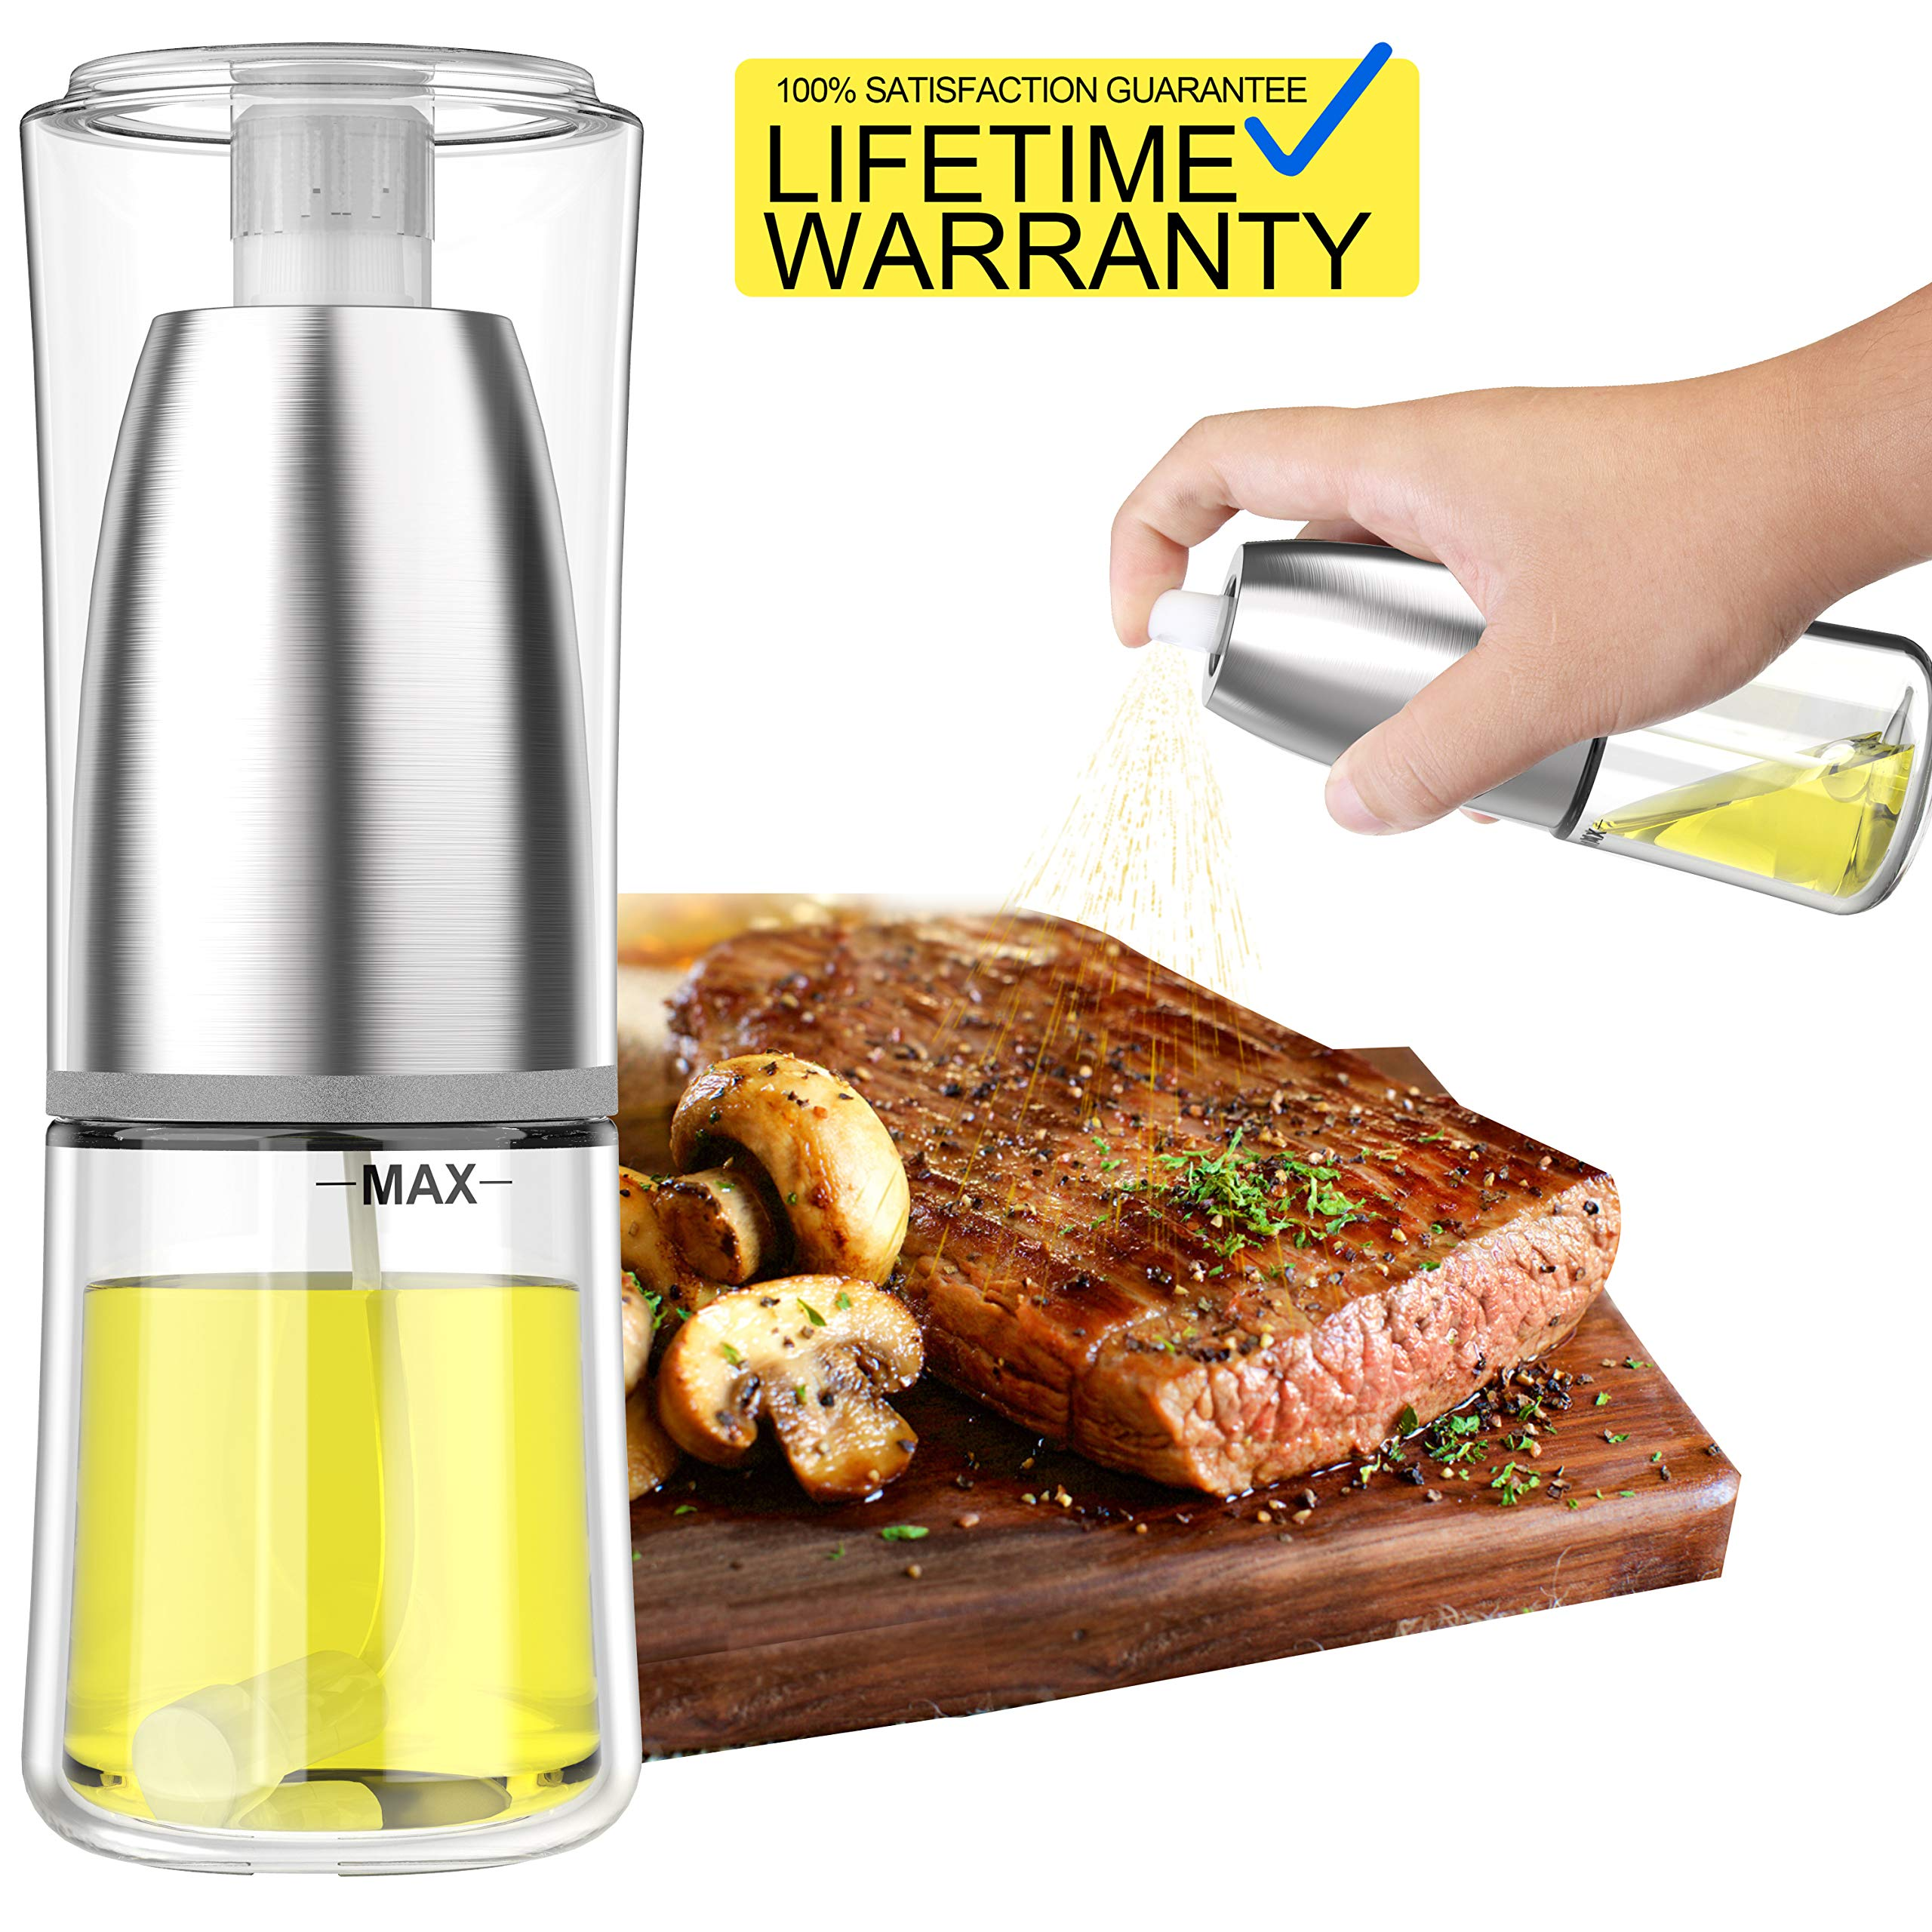 Updated 2019 Version Olive Oil Sprayer Dispenser Mister Bottle For Cooking, BBQ and Air Fryer, Premium Glass Oil Vinegar Soy Sauce Spray for Grilling, Kitchen, Salad, Bread Baking, Frying by NewFit